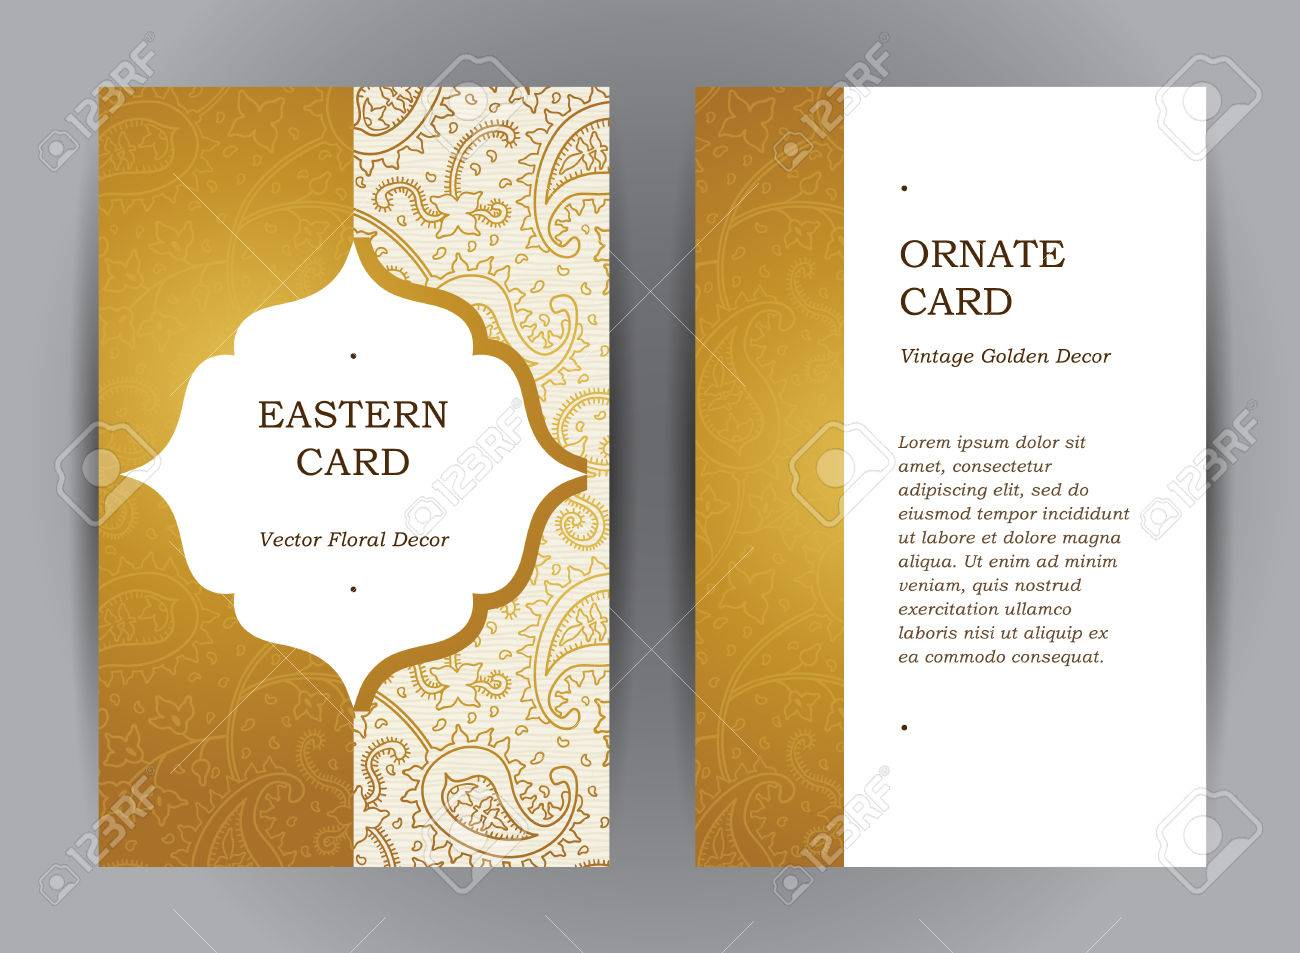 Invitation Card Stock Photos. Royalty Free Invitation Card Images